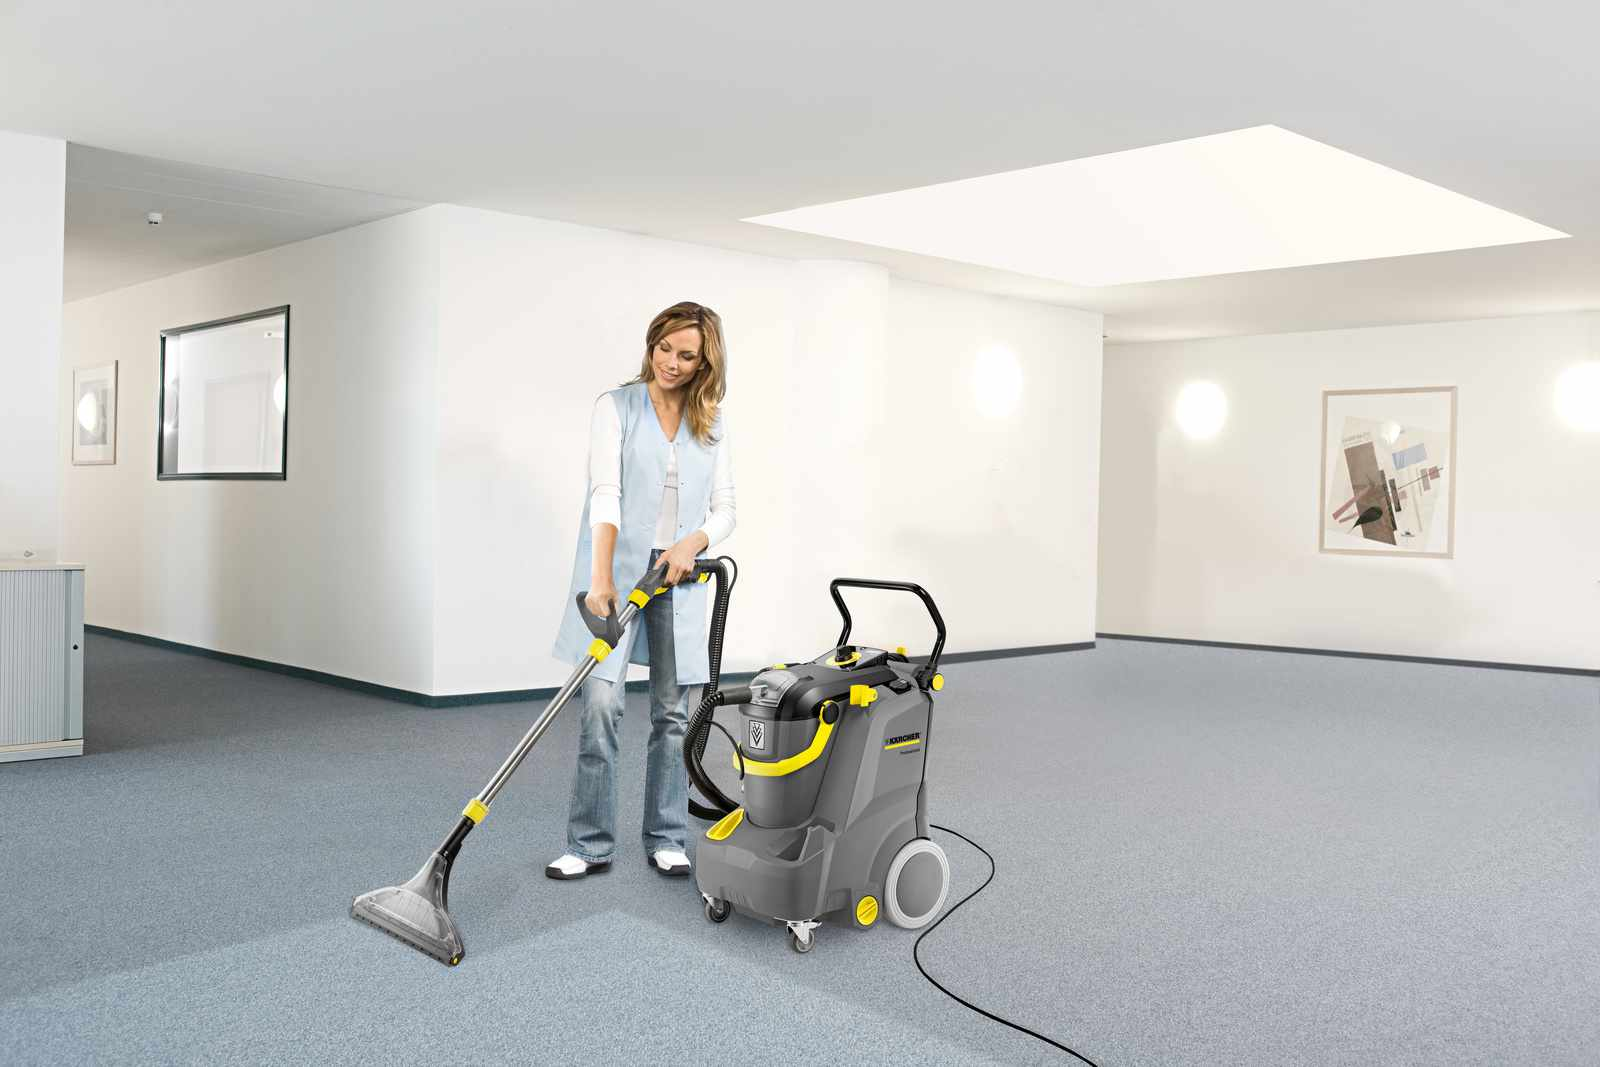 Puzzi 30/4 cleaning an office carpet